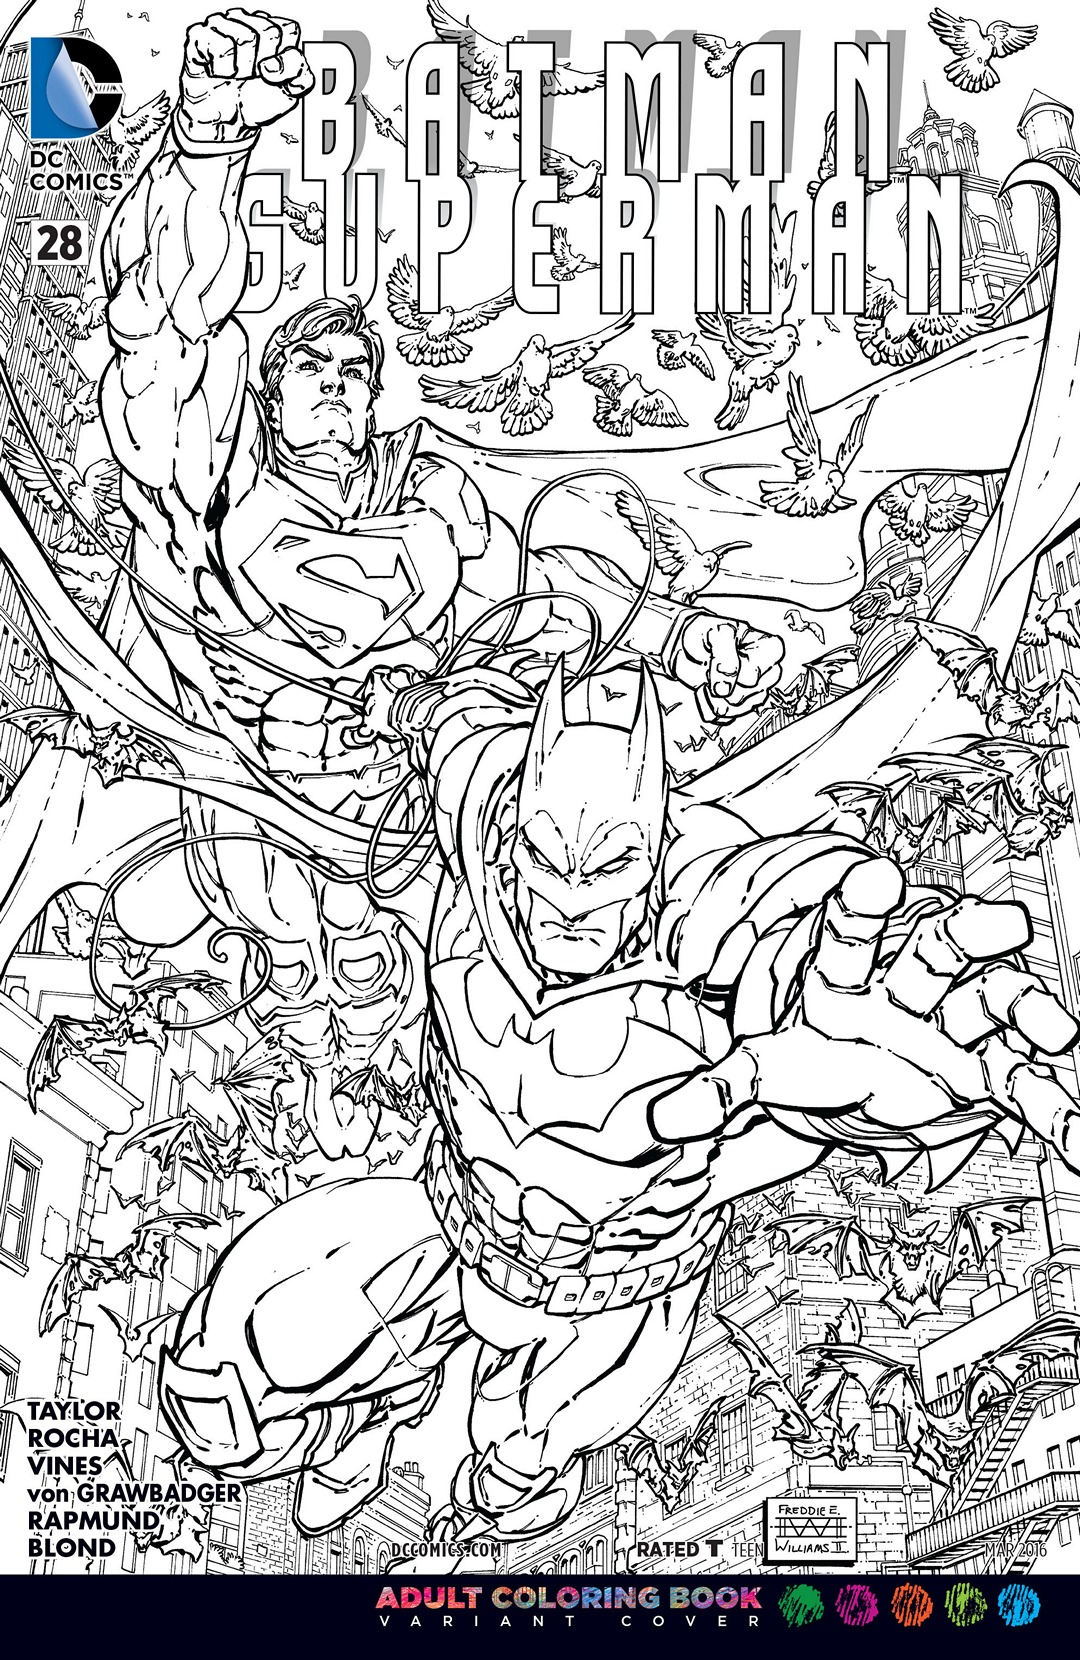 Image Batman Superman Vol 1 28 Adult Coloring Book Variant Jpg